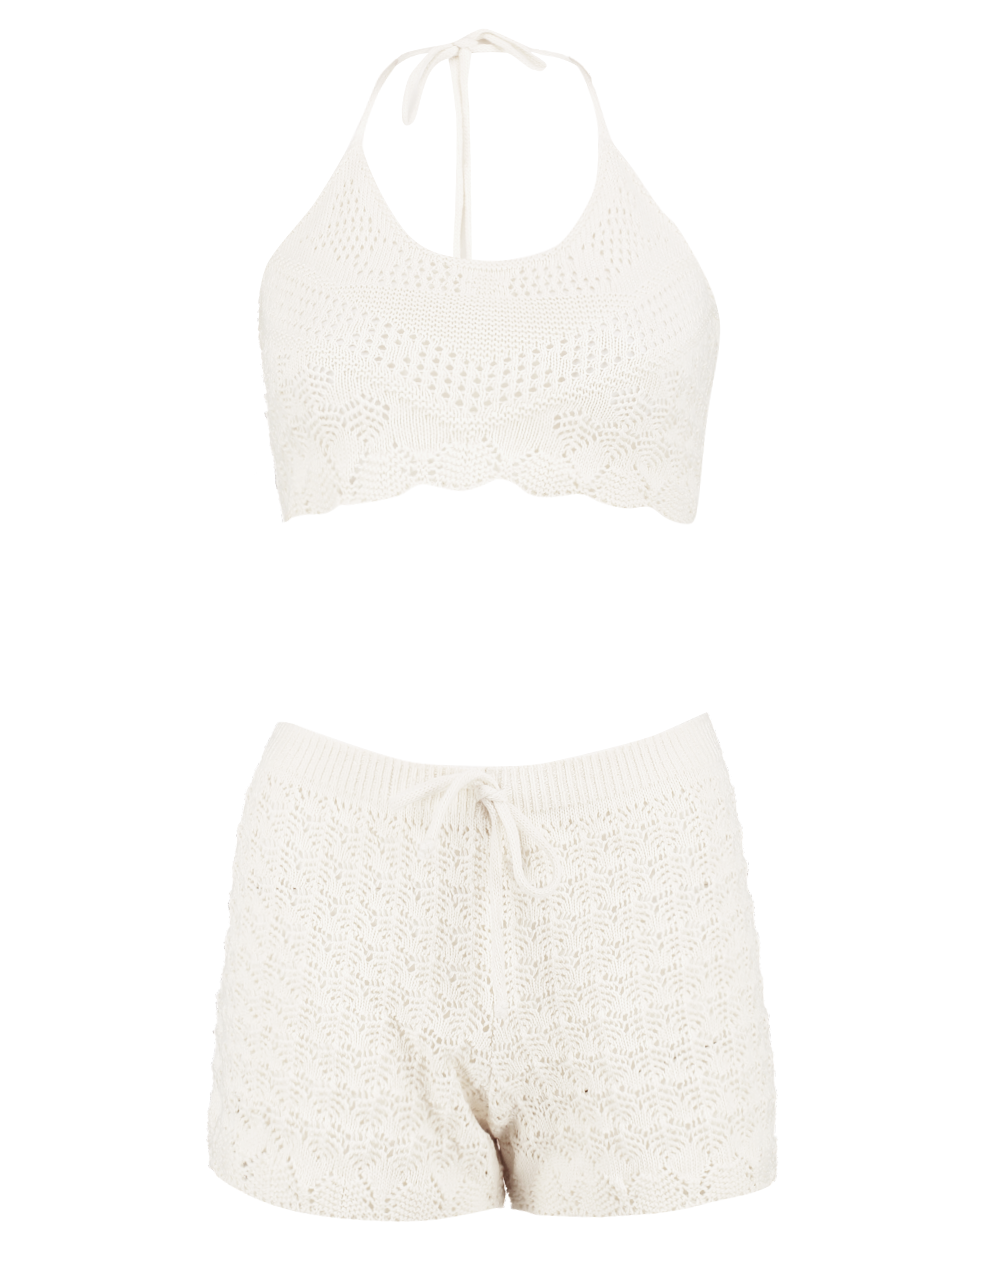 Evie halterneck crochet knit co-ord